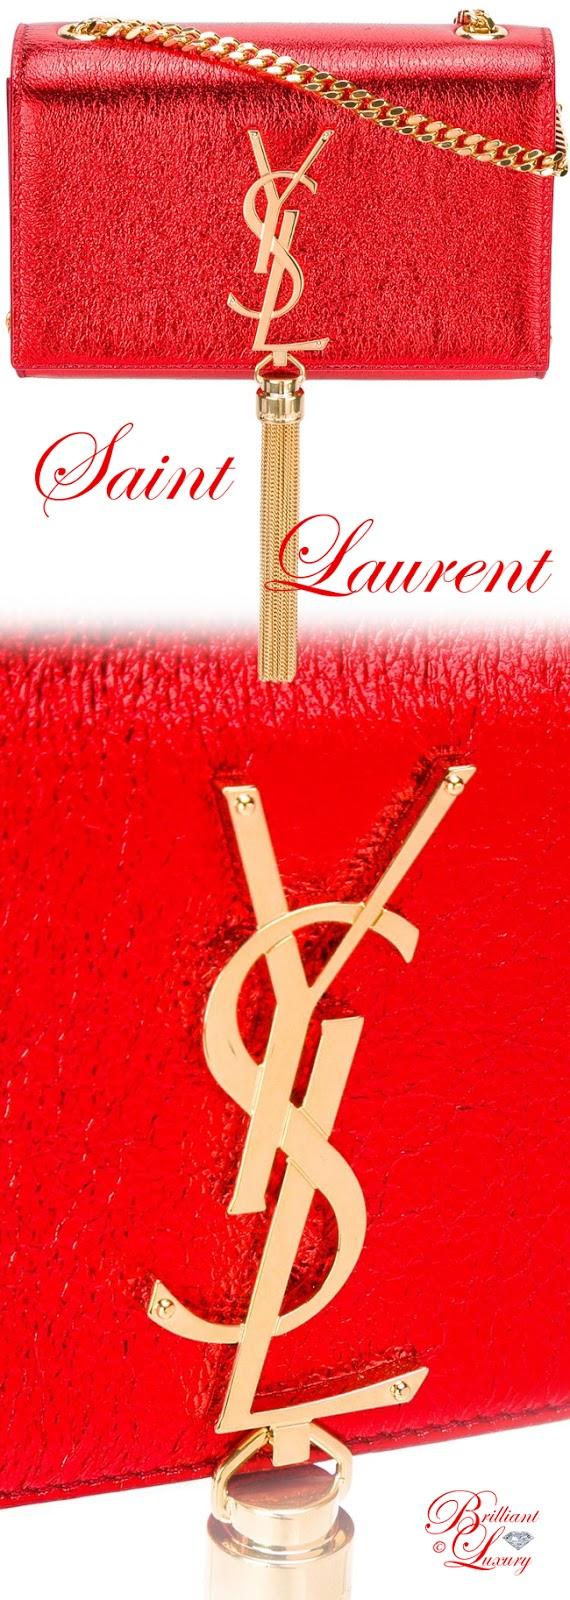 Brilliant Luxury ♦ Saint Laurent small Monogram Kate tassel satchel bag